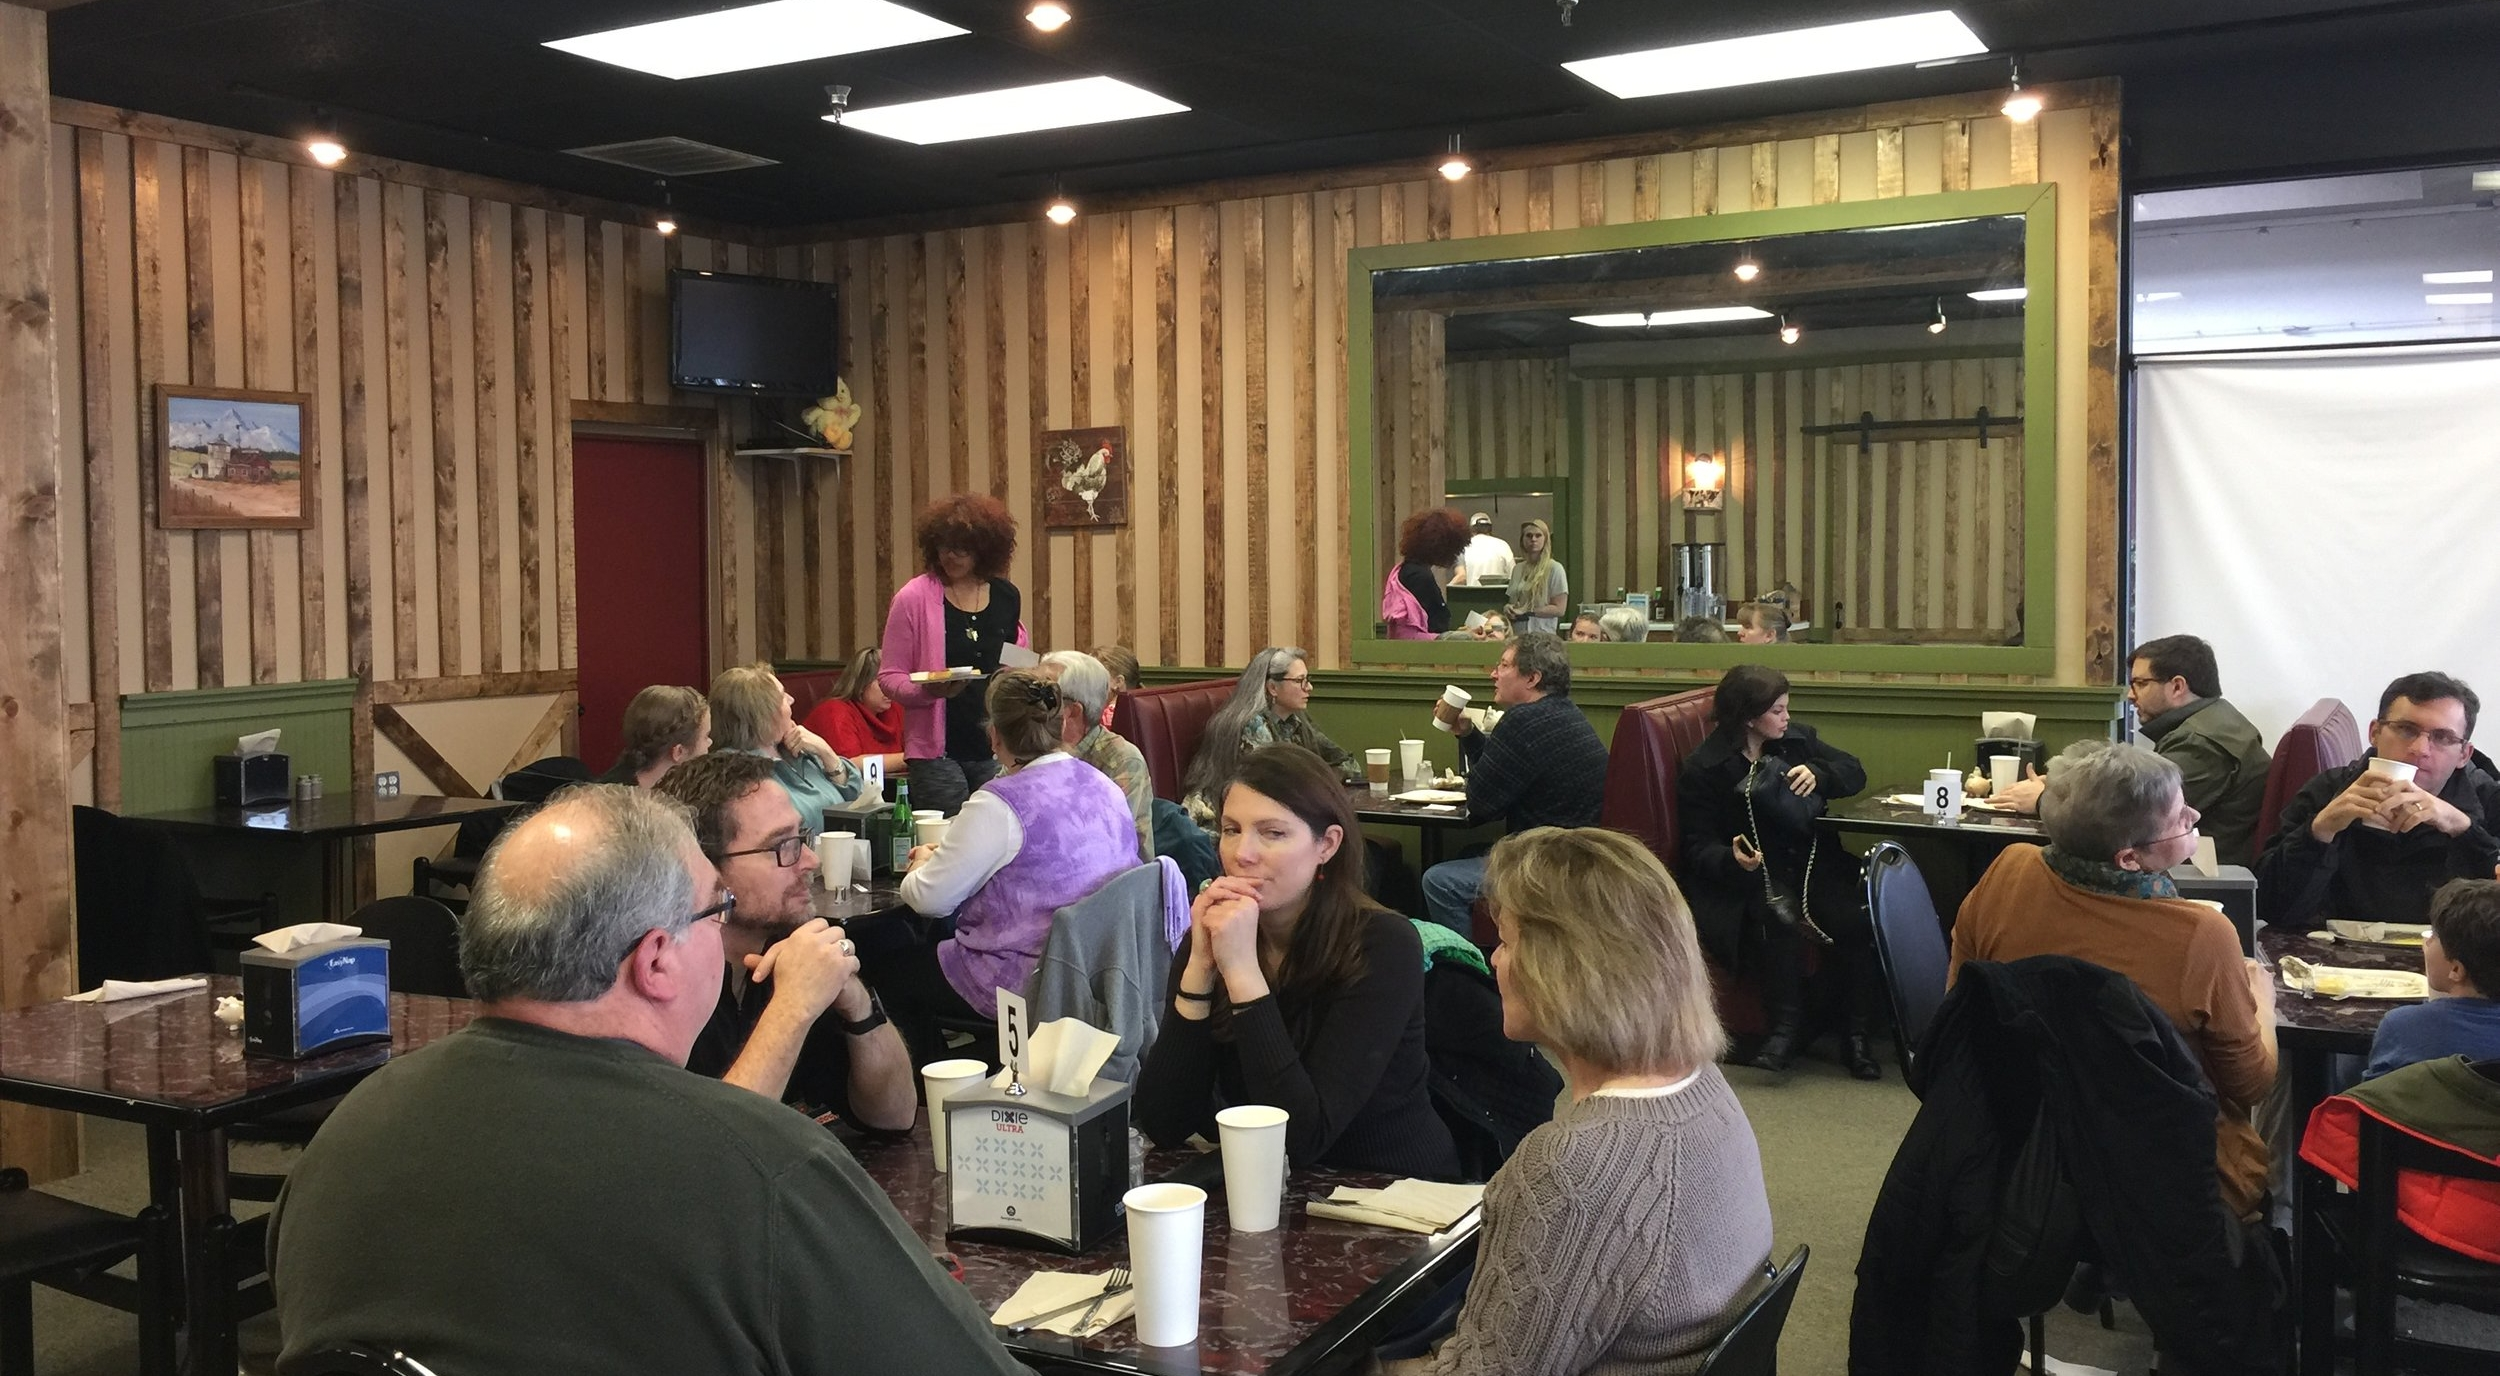 Sanctuary Vegan Cafe Brings Plant-Based Cuisine to West Knoxville